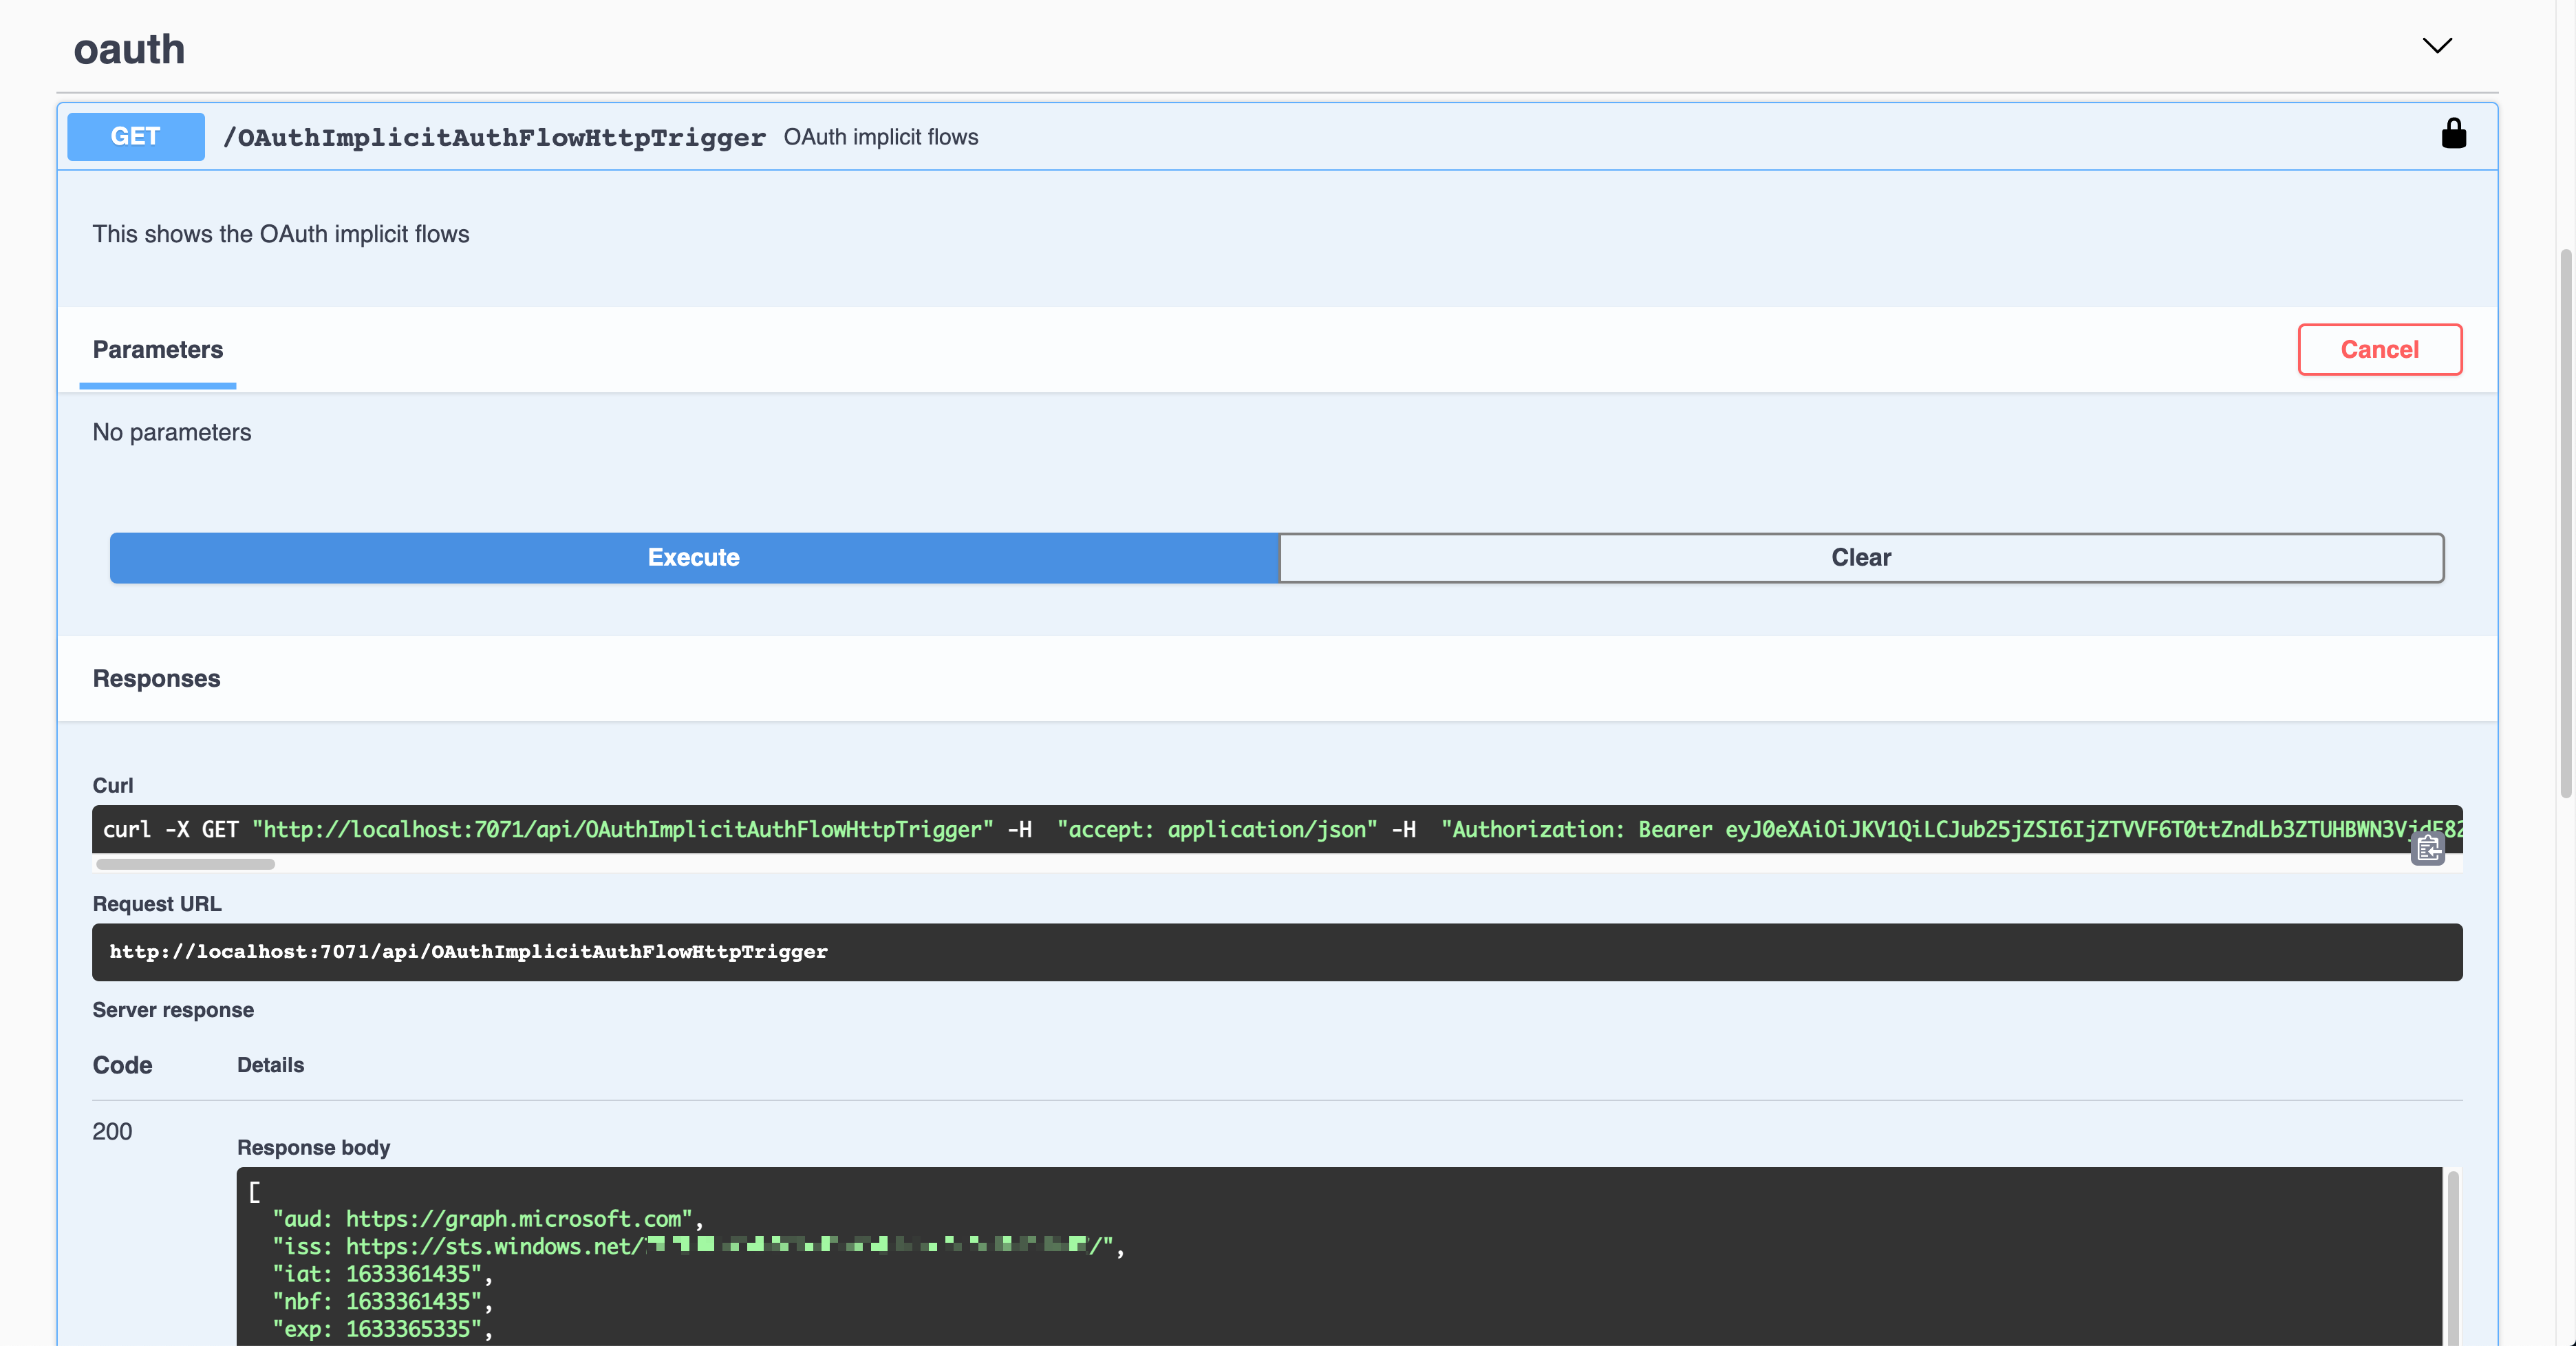 Swagger UI - OAuth2 Implicit Auth - Result